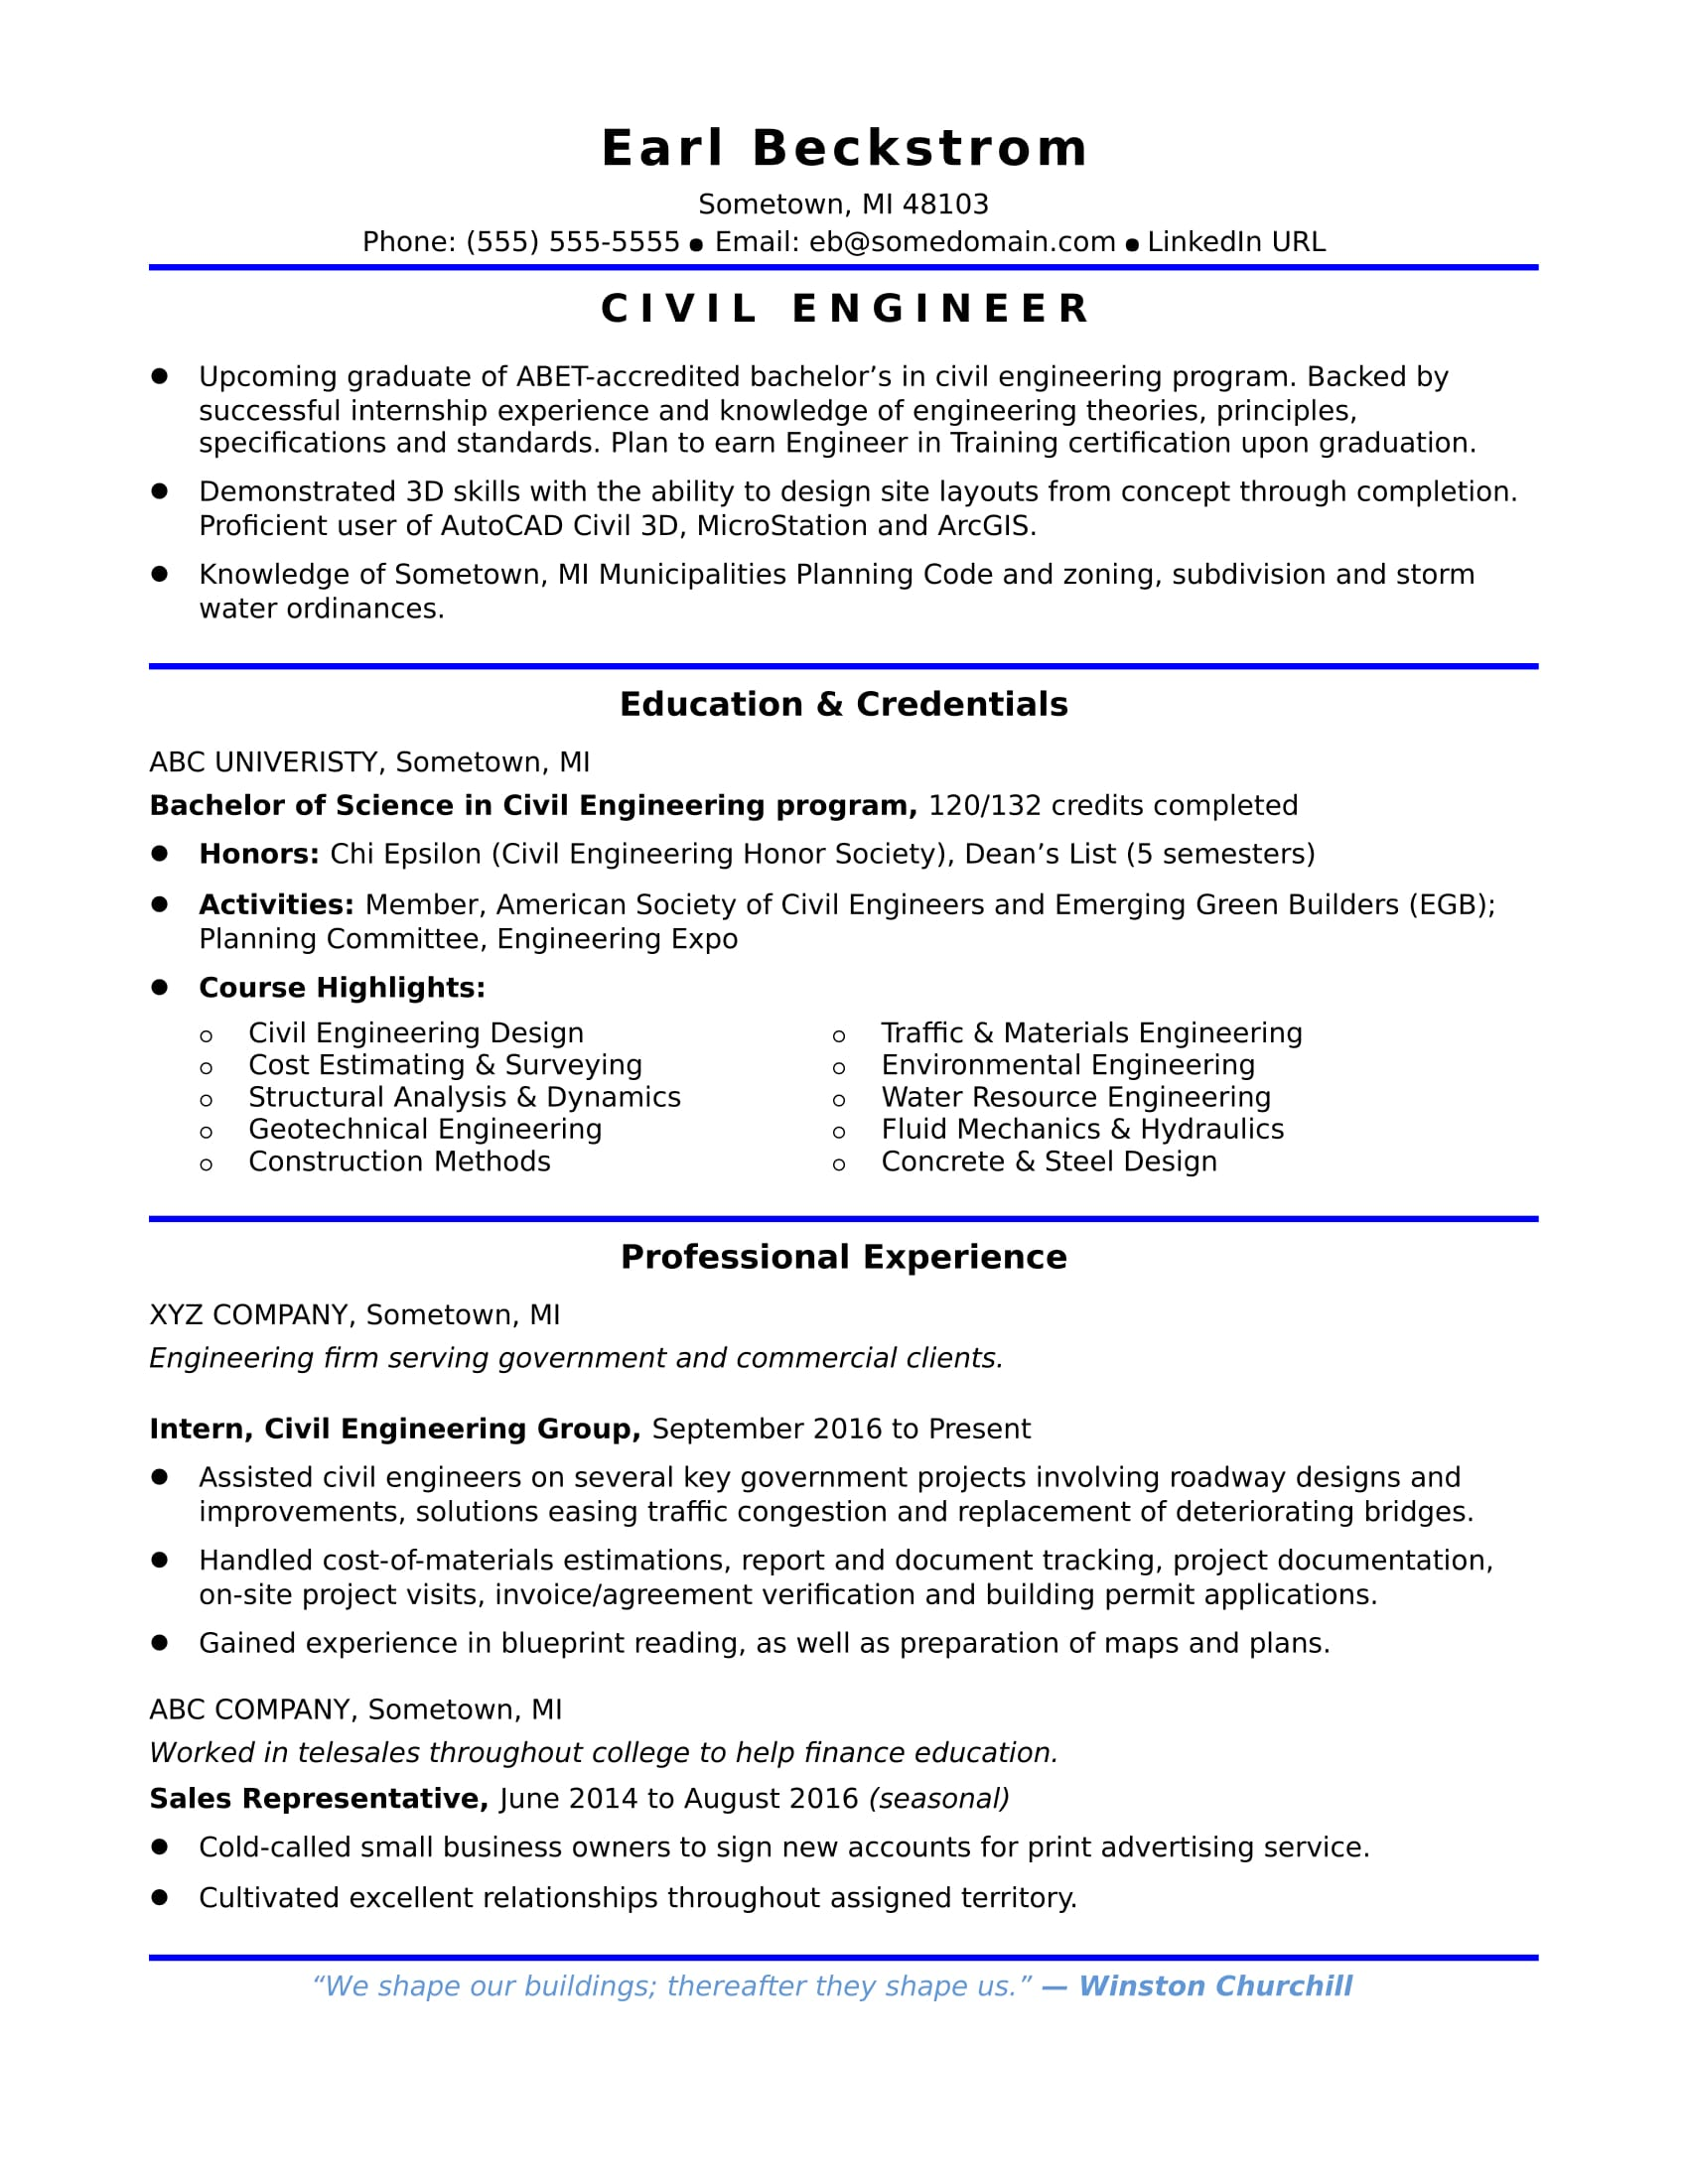 Sample Resume for an Entry-Level Civil Engineer | Monster com